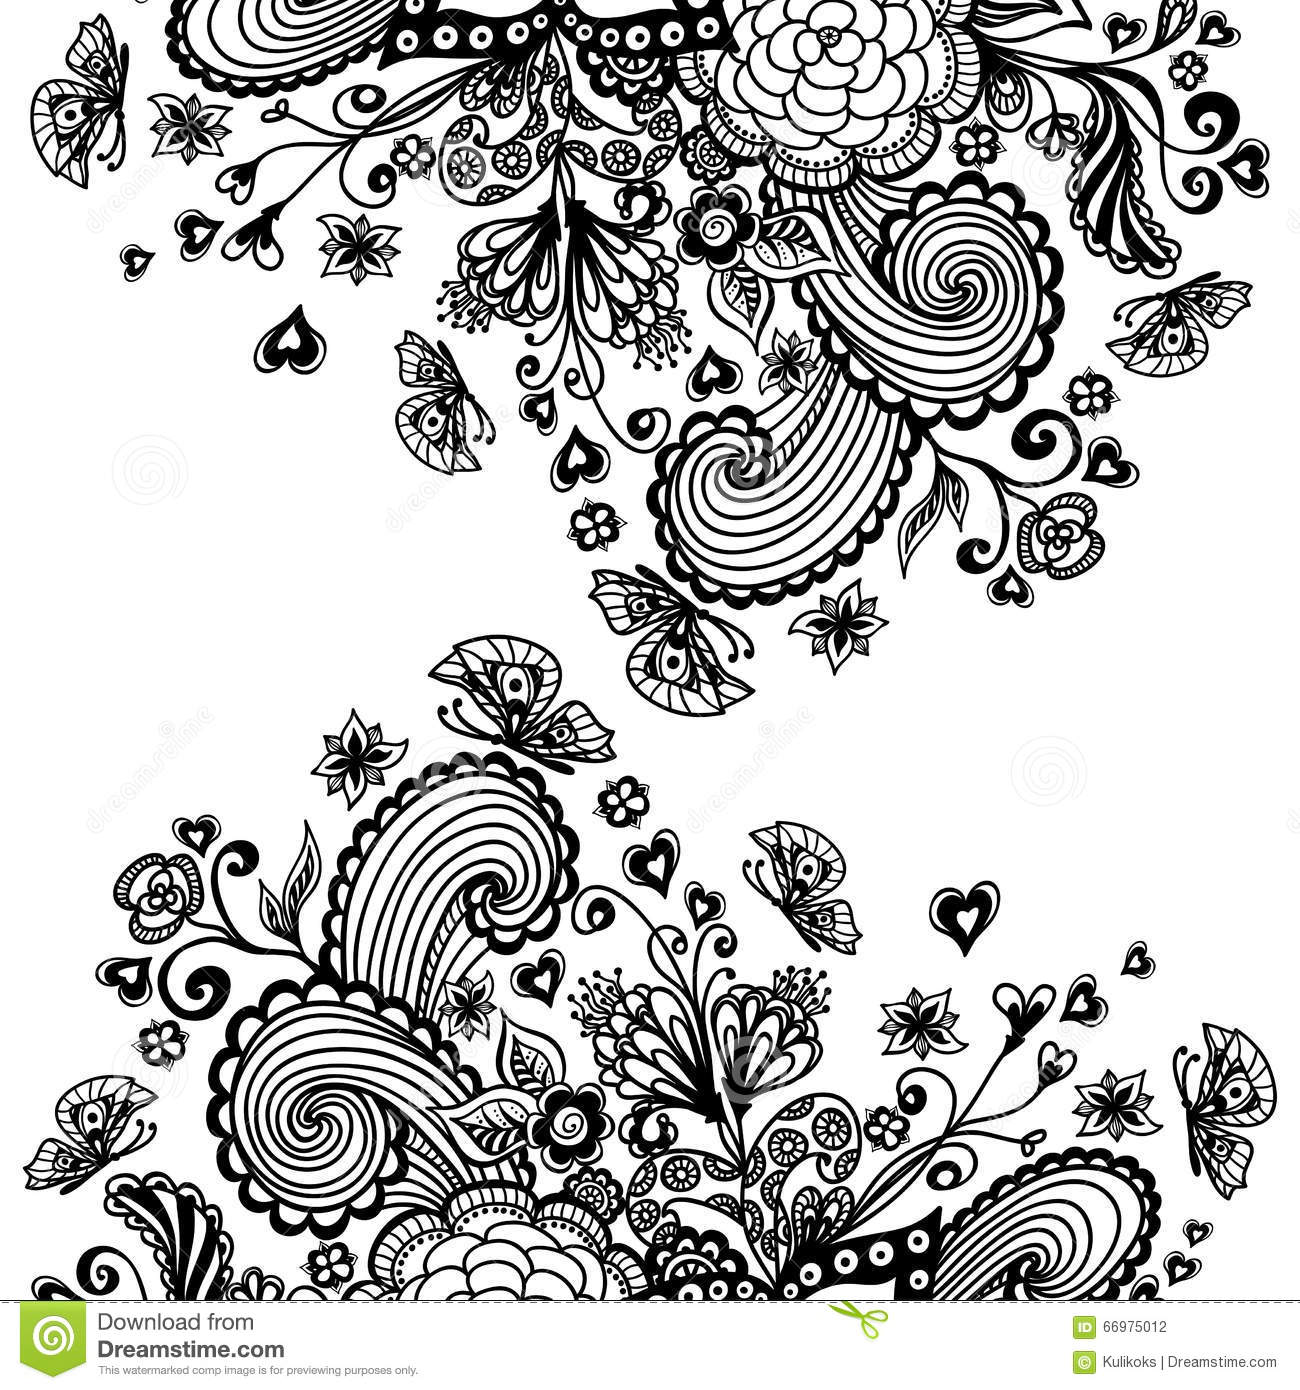 hearts and butterflies coloring pages - zen doodle background with flowers butterflies hearts